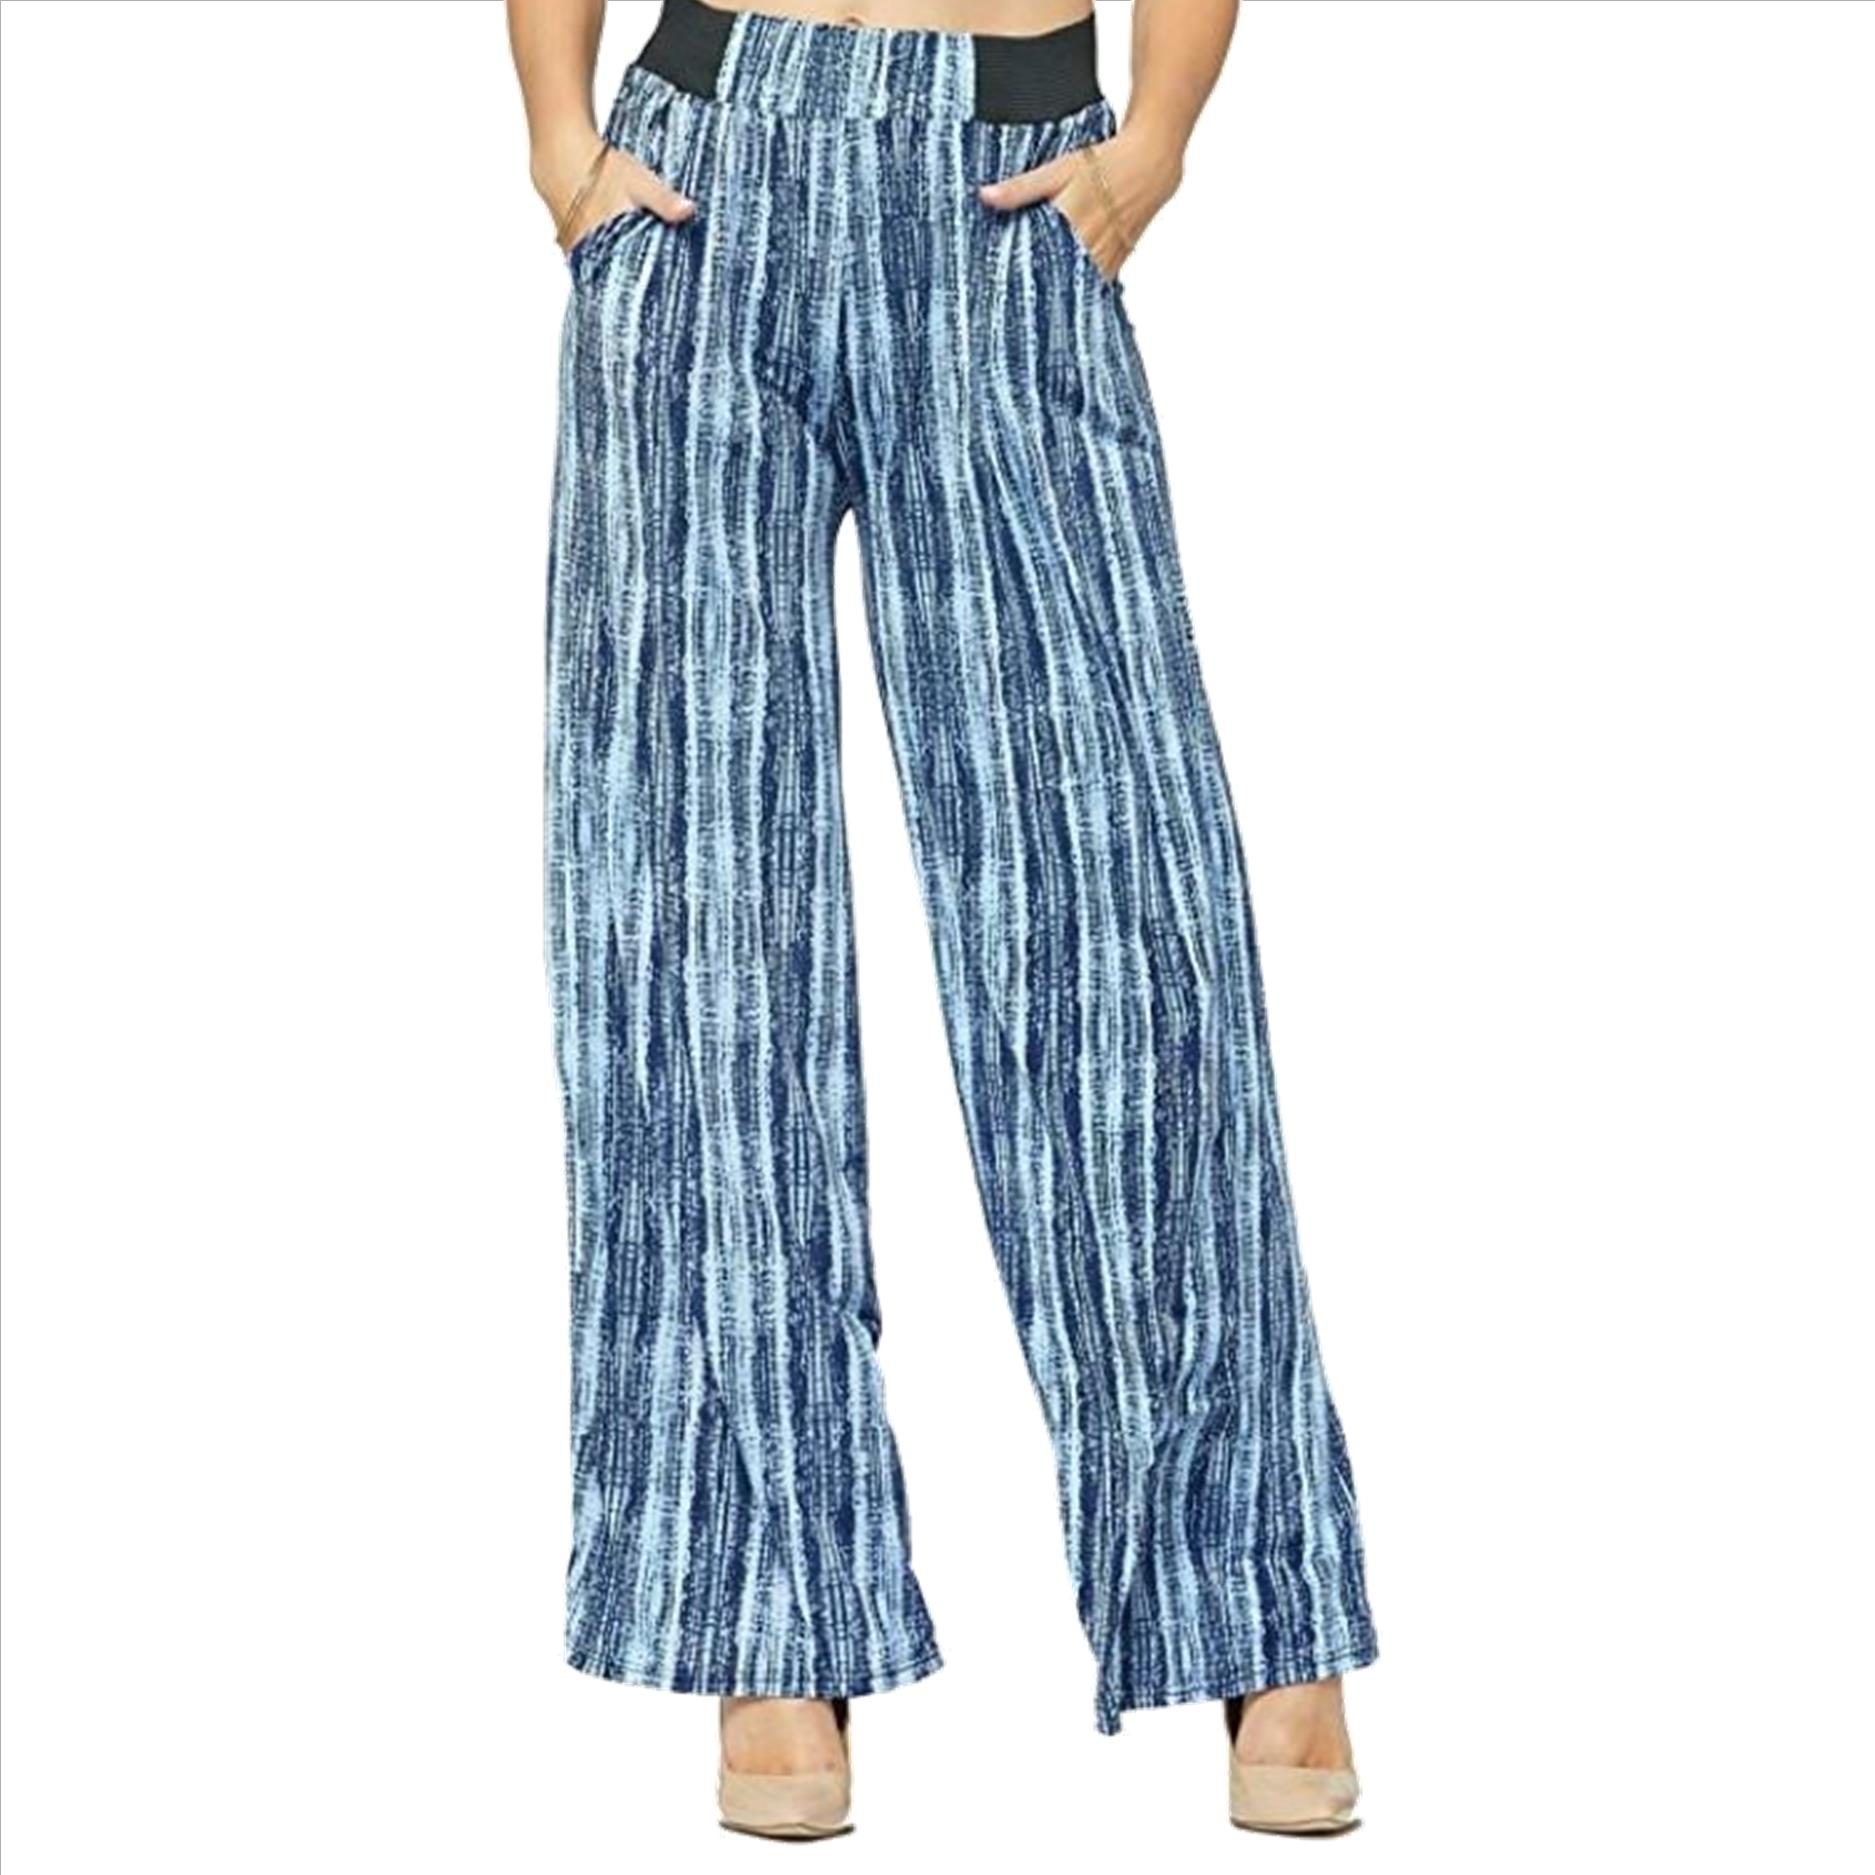 Amazing Palazzo Pants with Pockets - #217